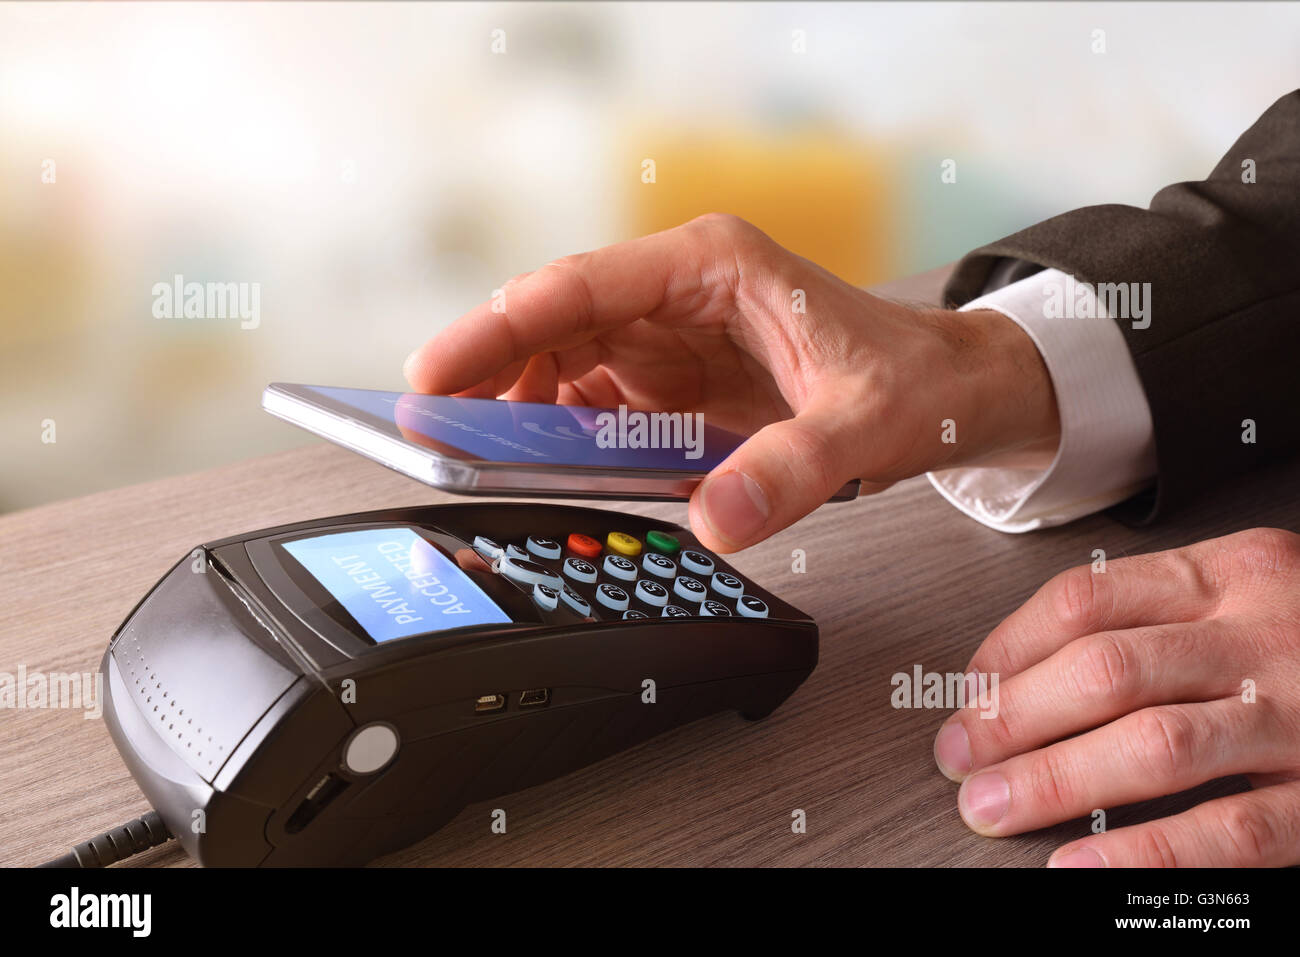 Payment on a trade through mobile and NFC technology. Elevated view. Horizontal composition. - Stock Image